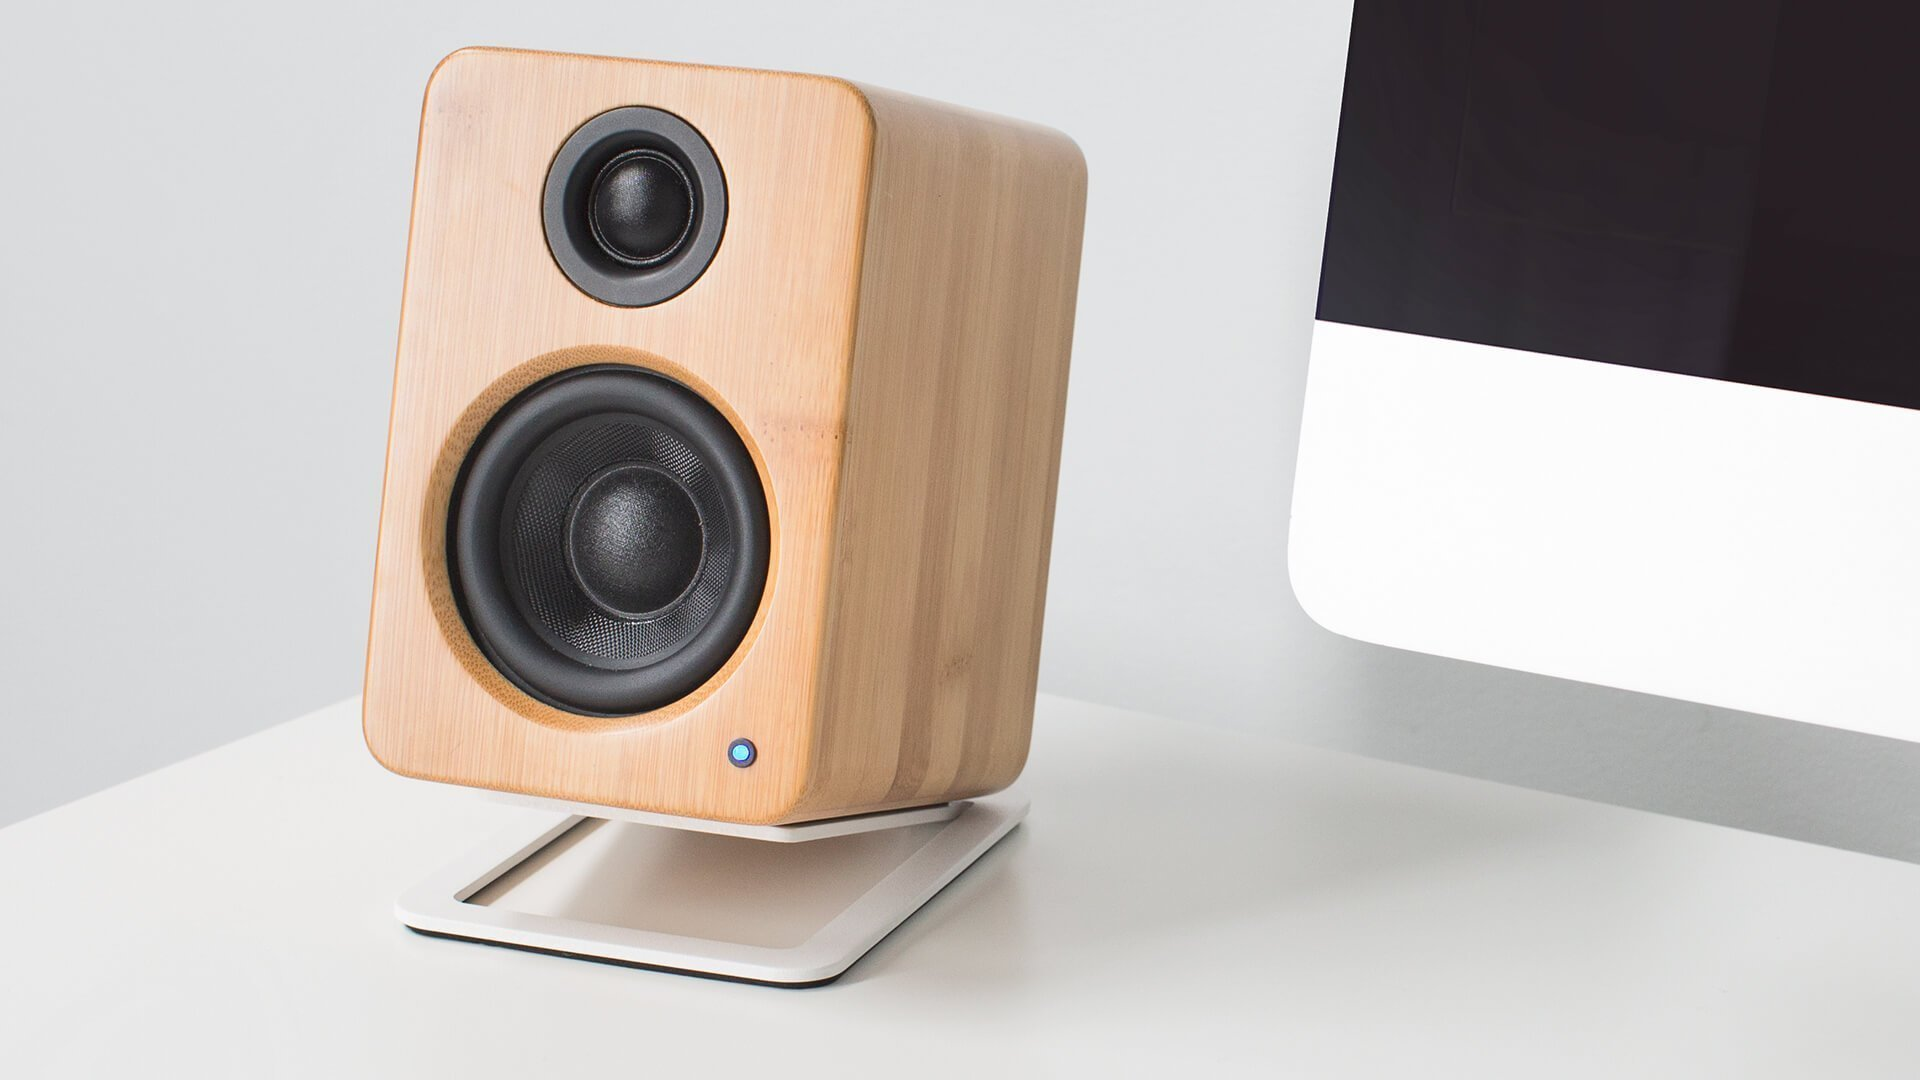 Kanto Audio Yu2 Powered Desktop Speakers Bamboo Active PC Mac USB